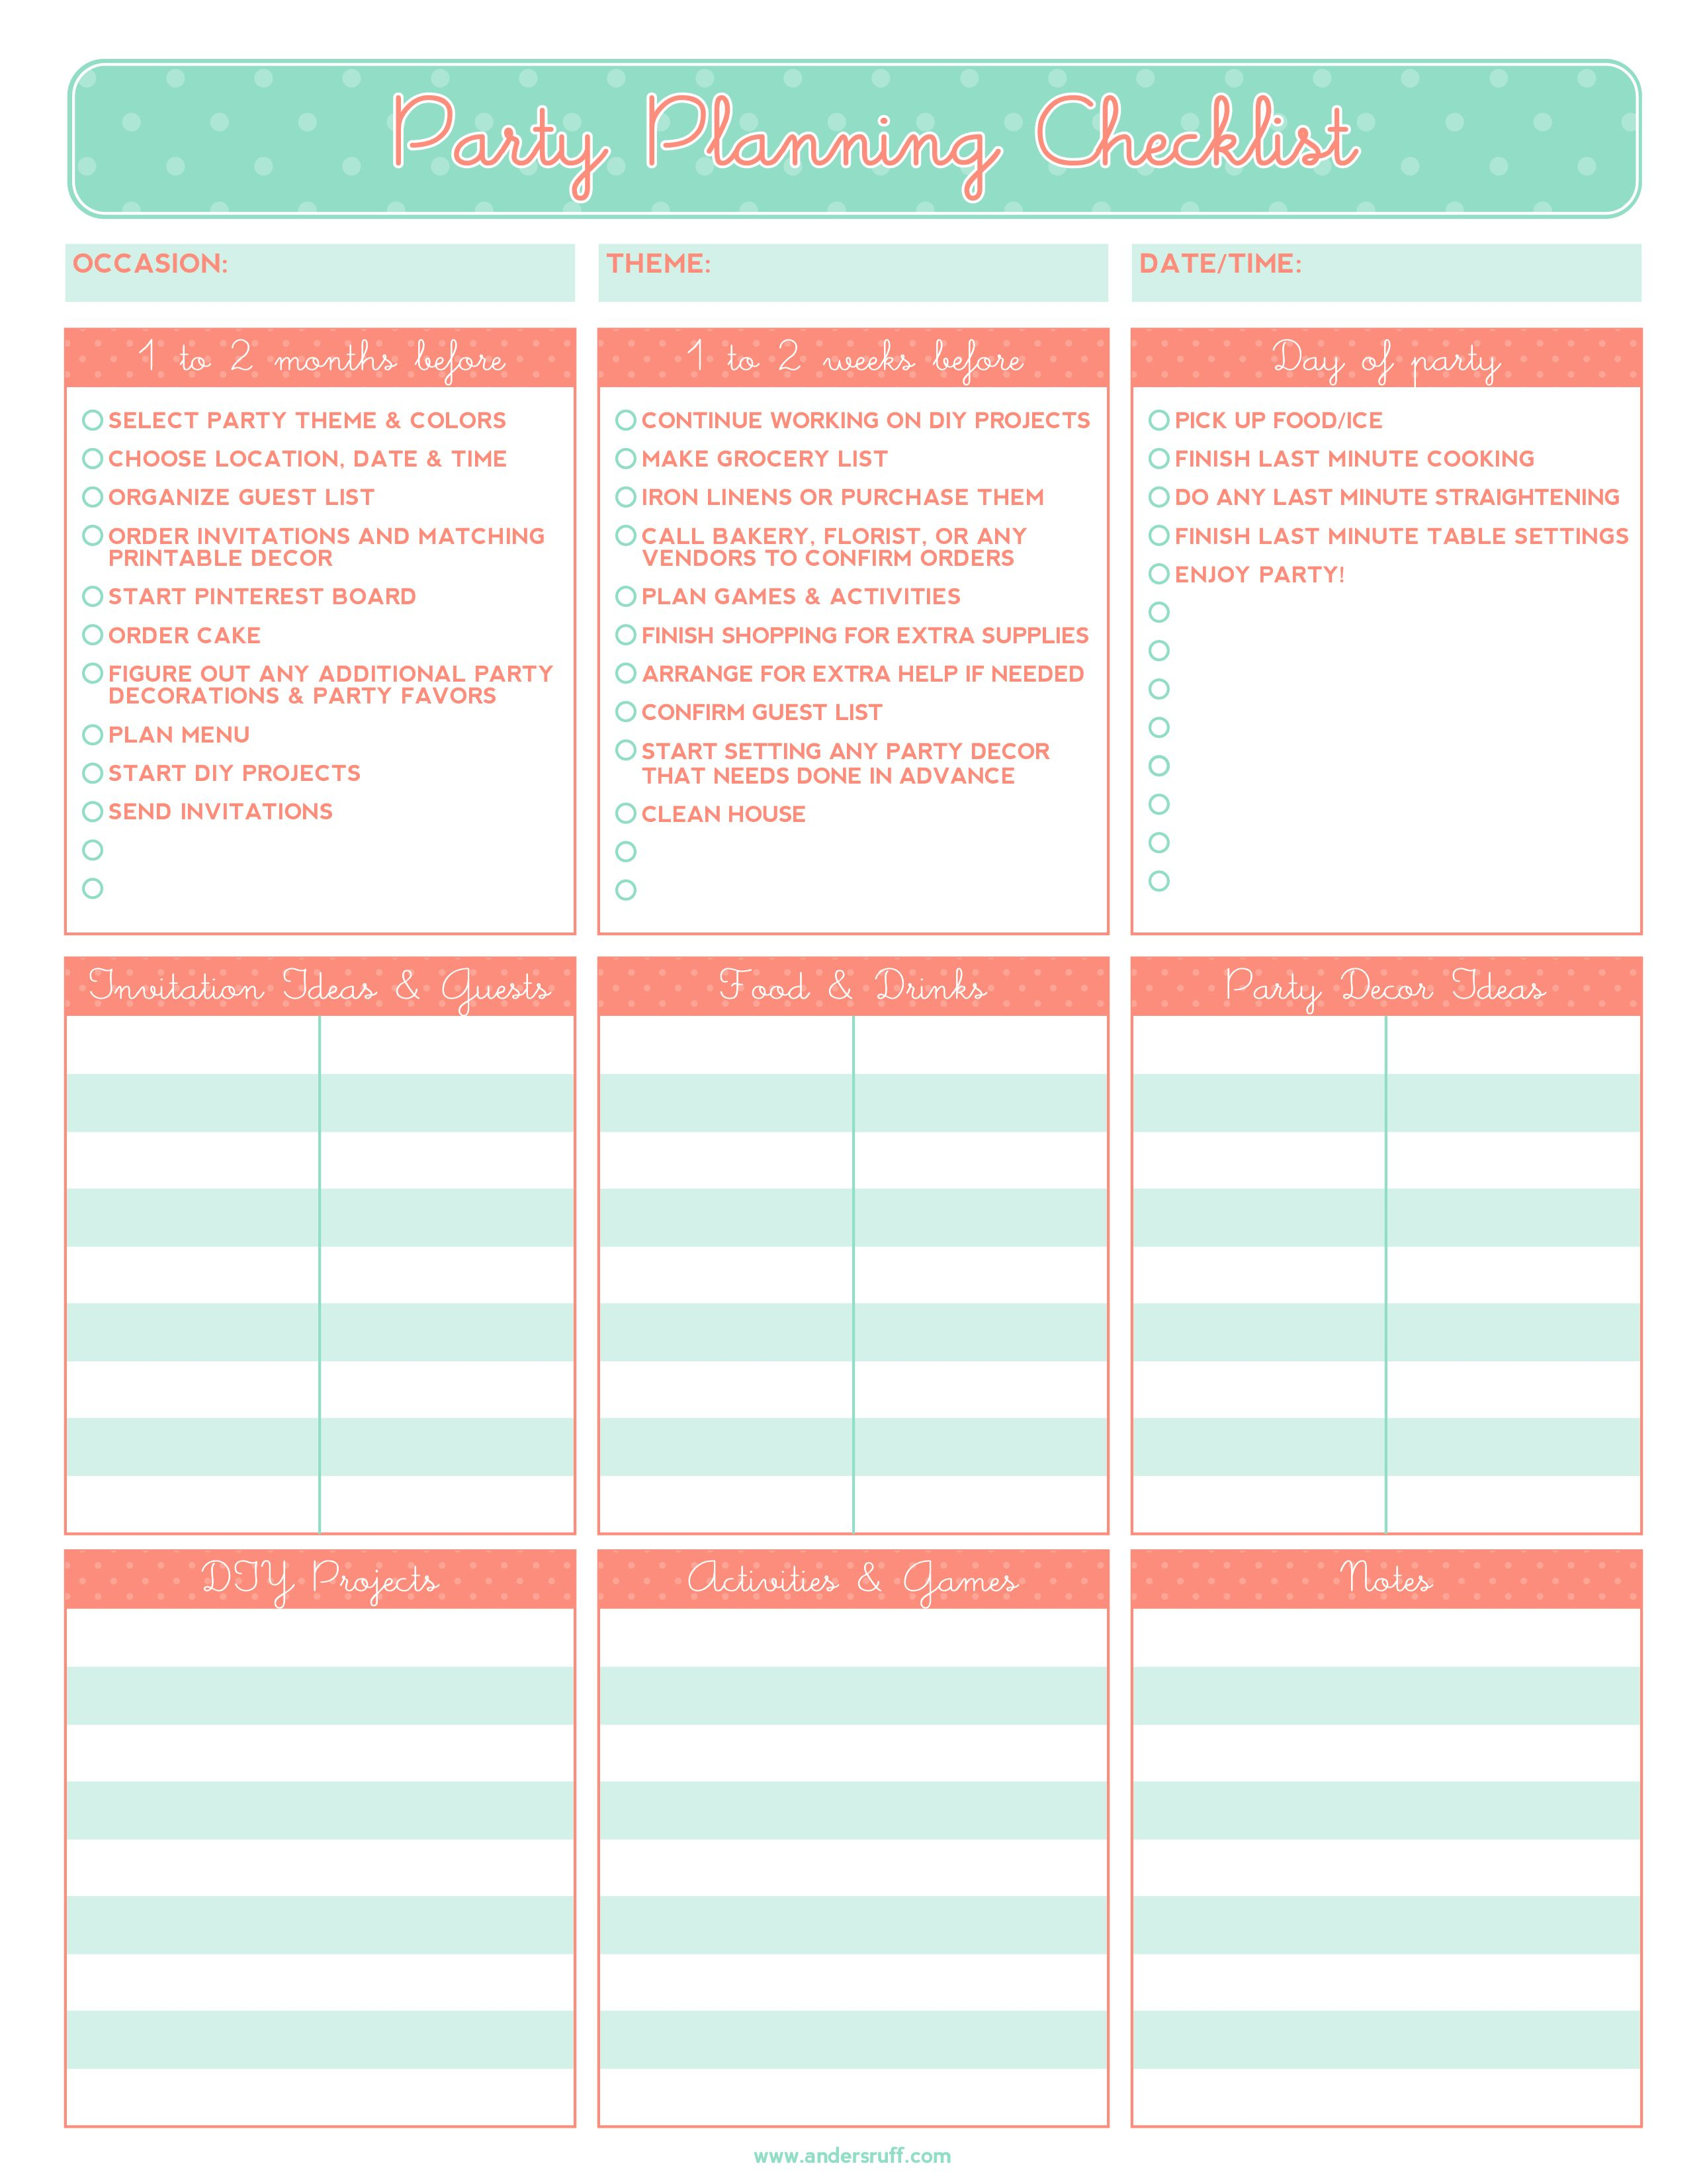 Free Printable Party Planning Checklist | It's The Little Things - Free Printable Birthday Guest List